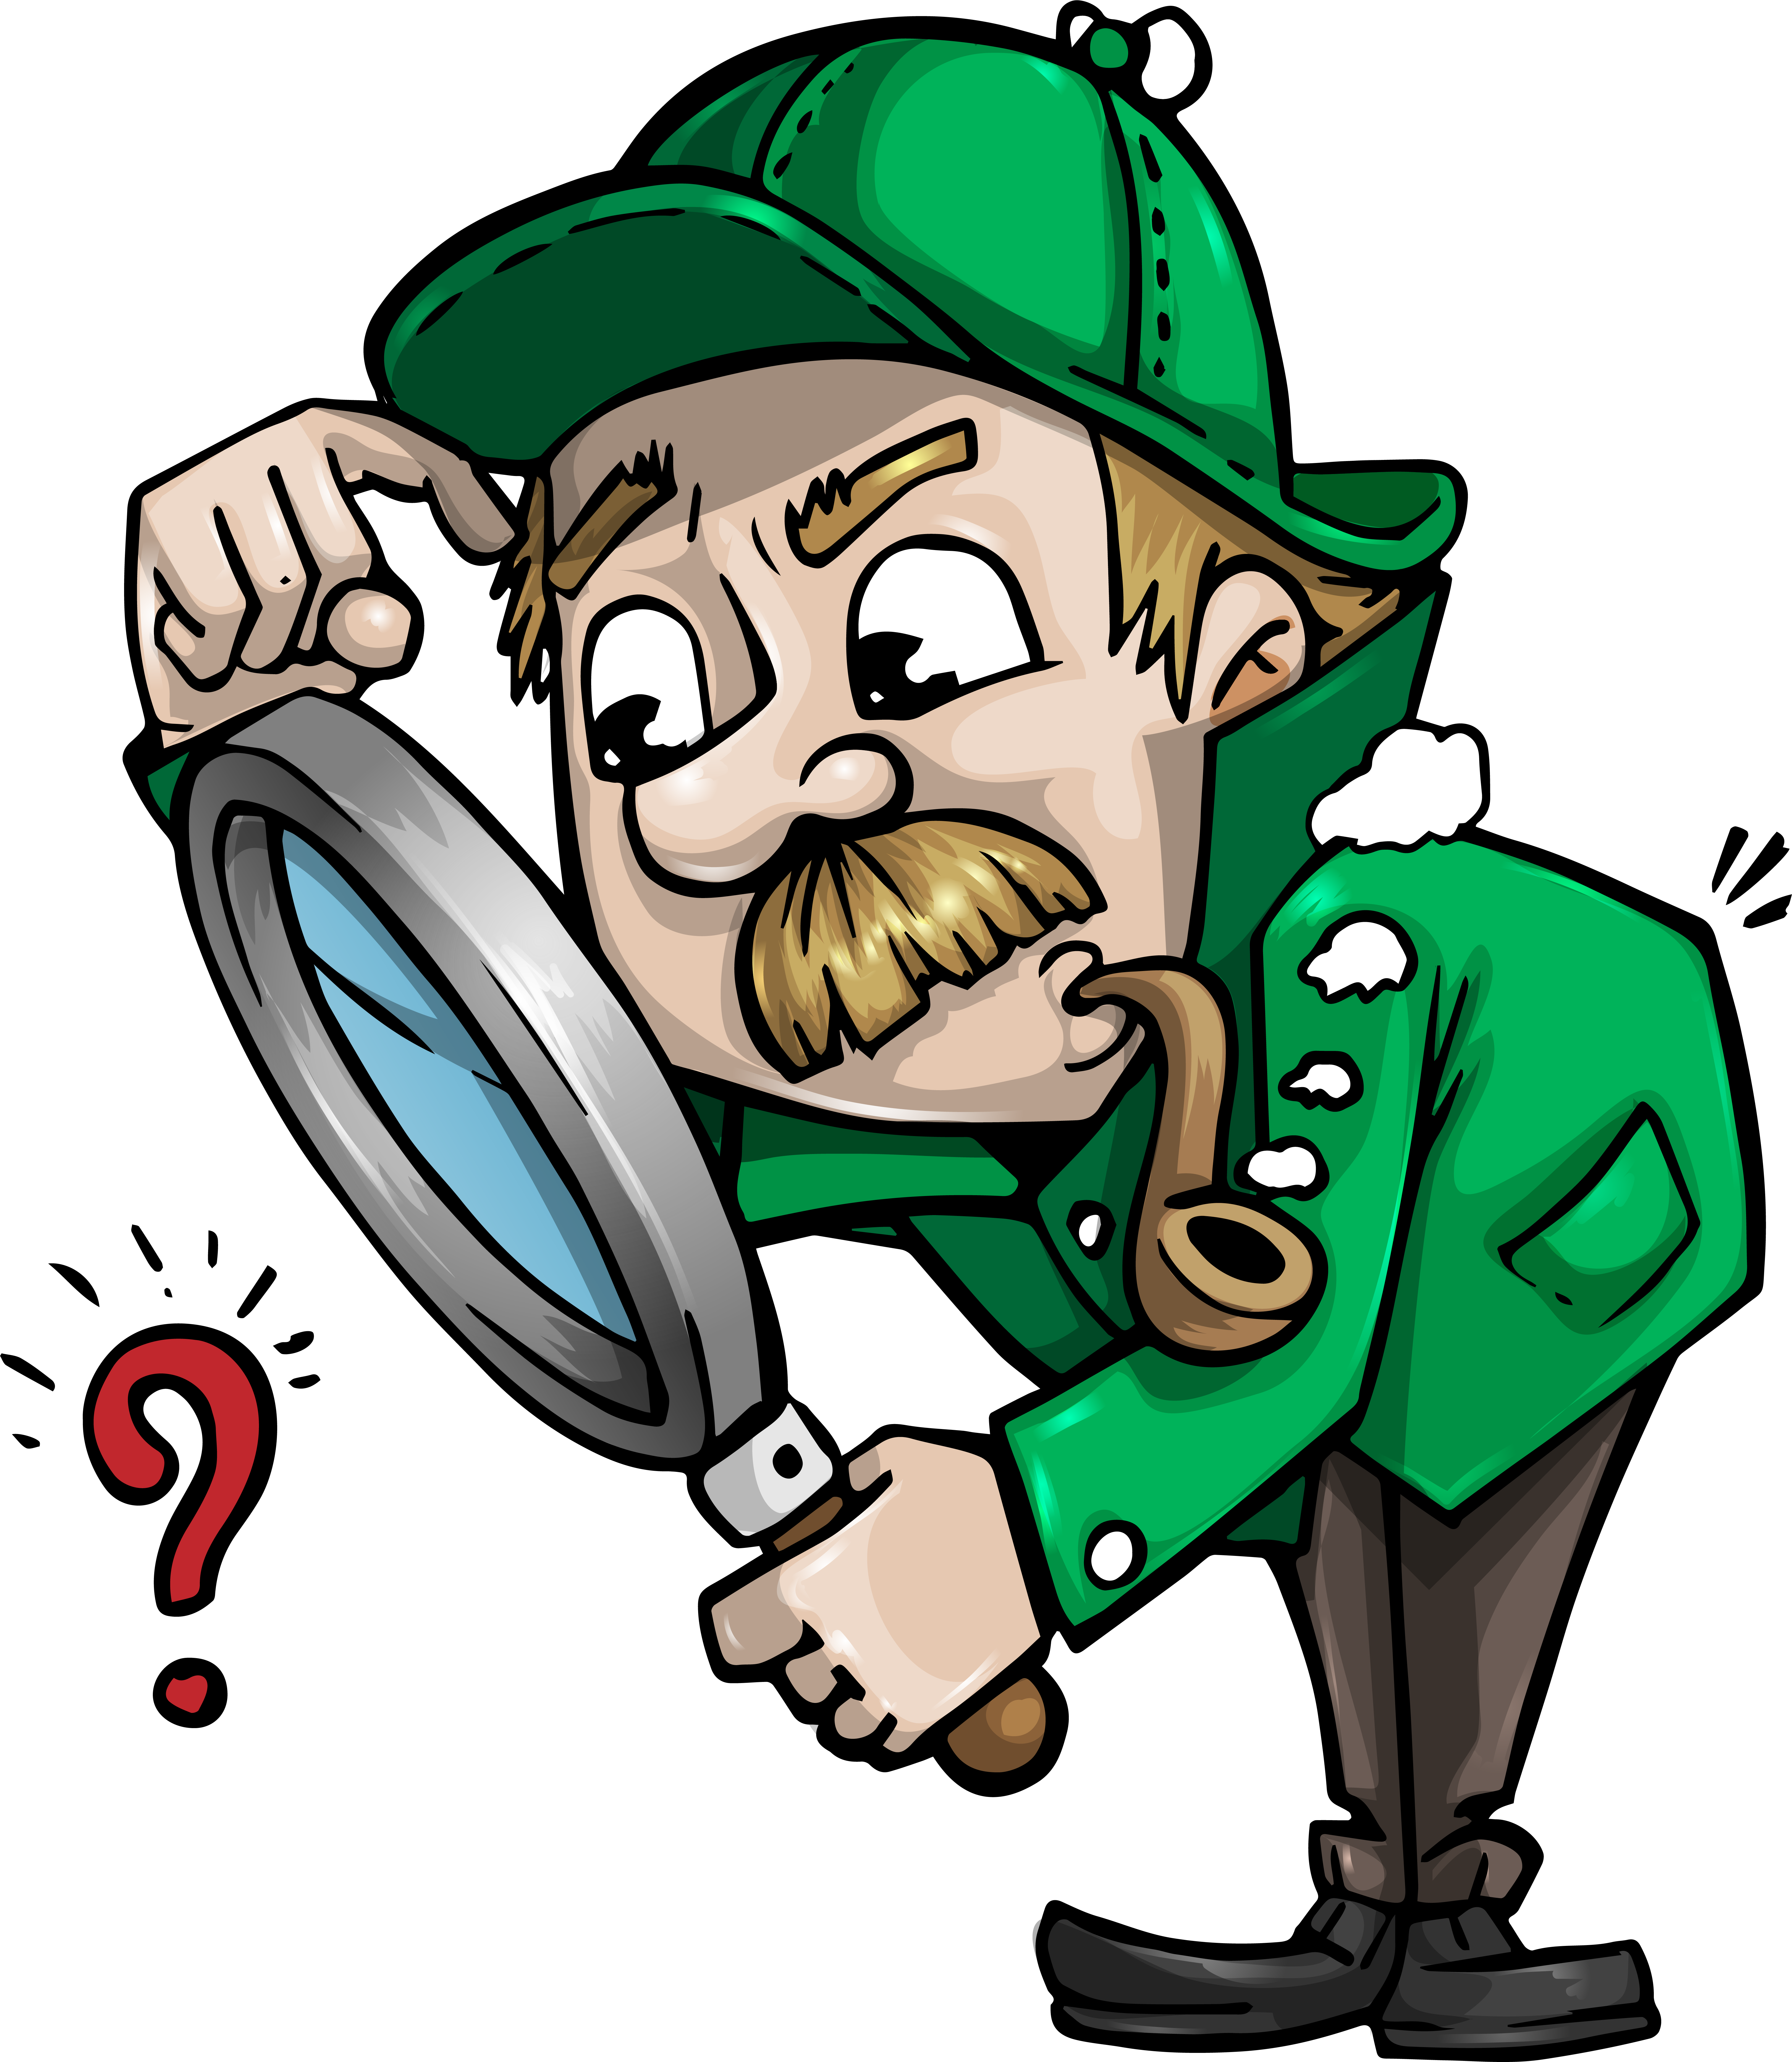 Detective searching for clues with a magnifying glass